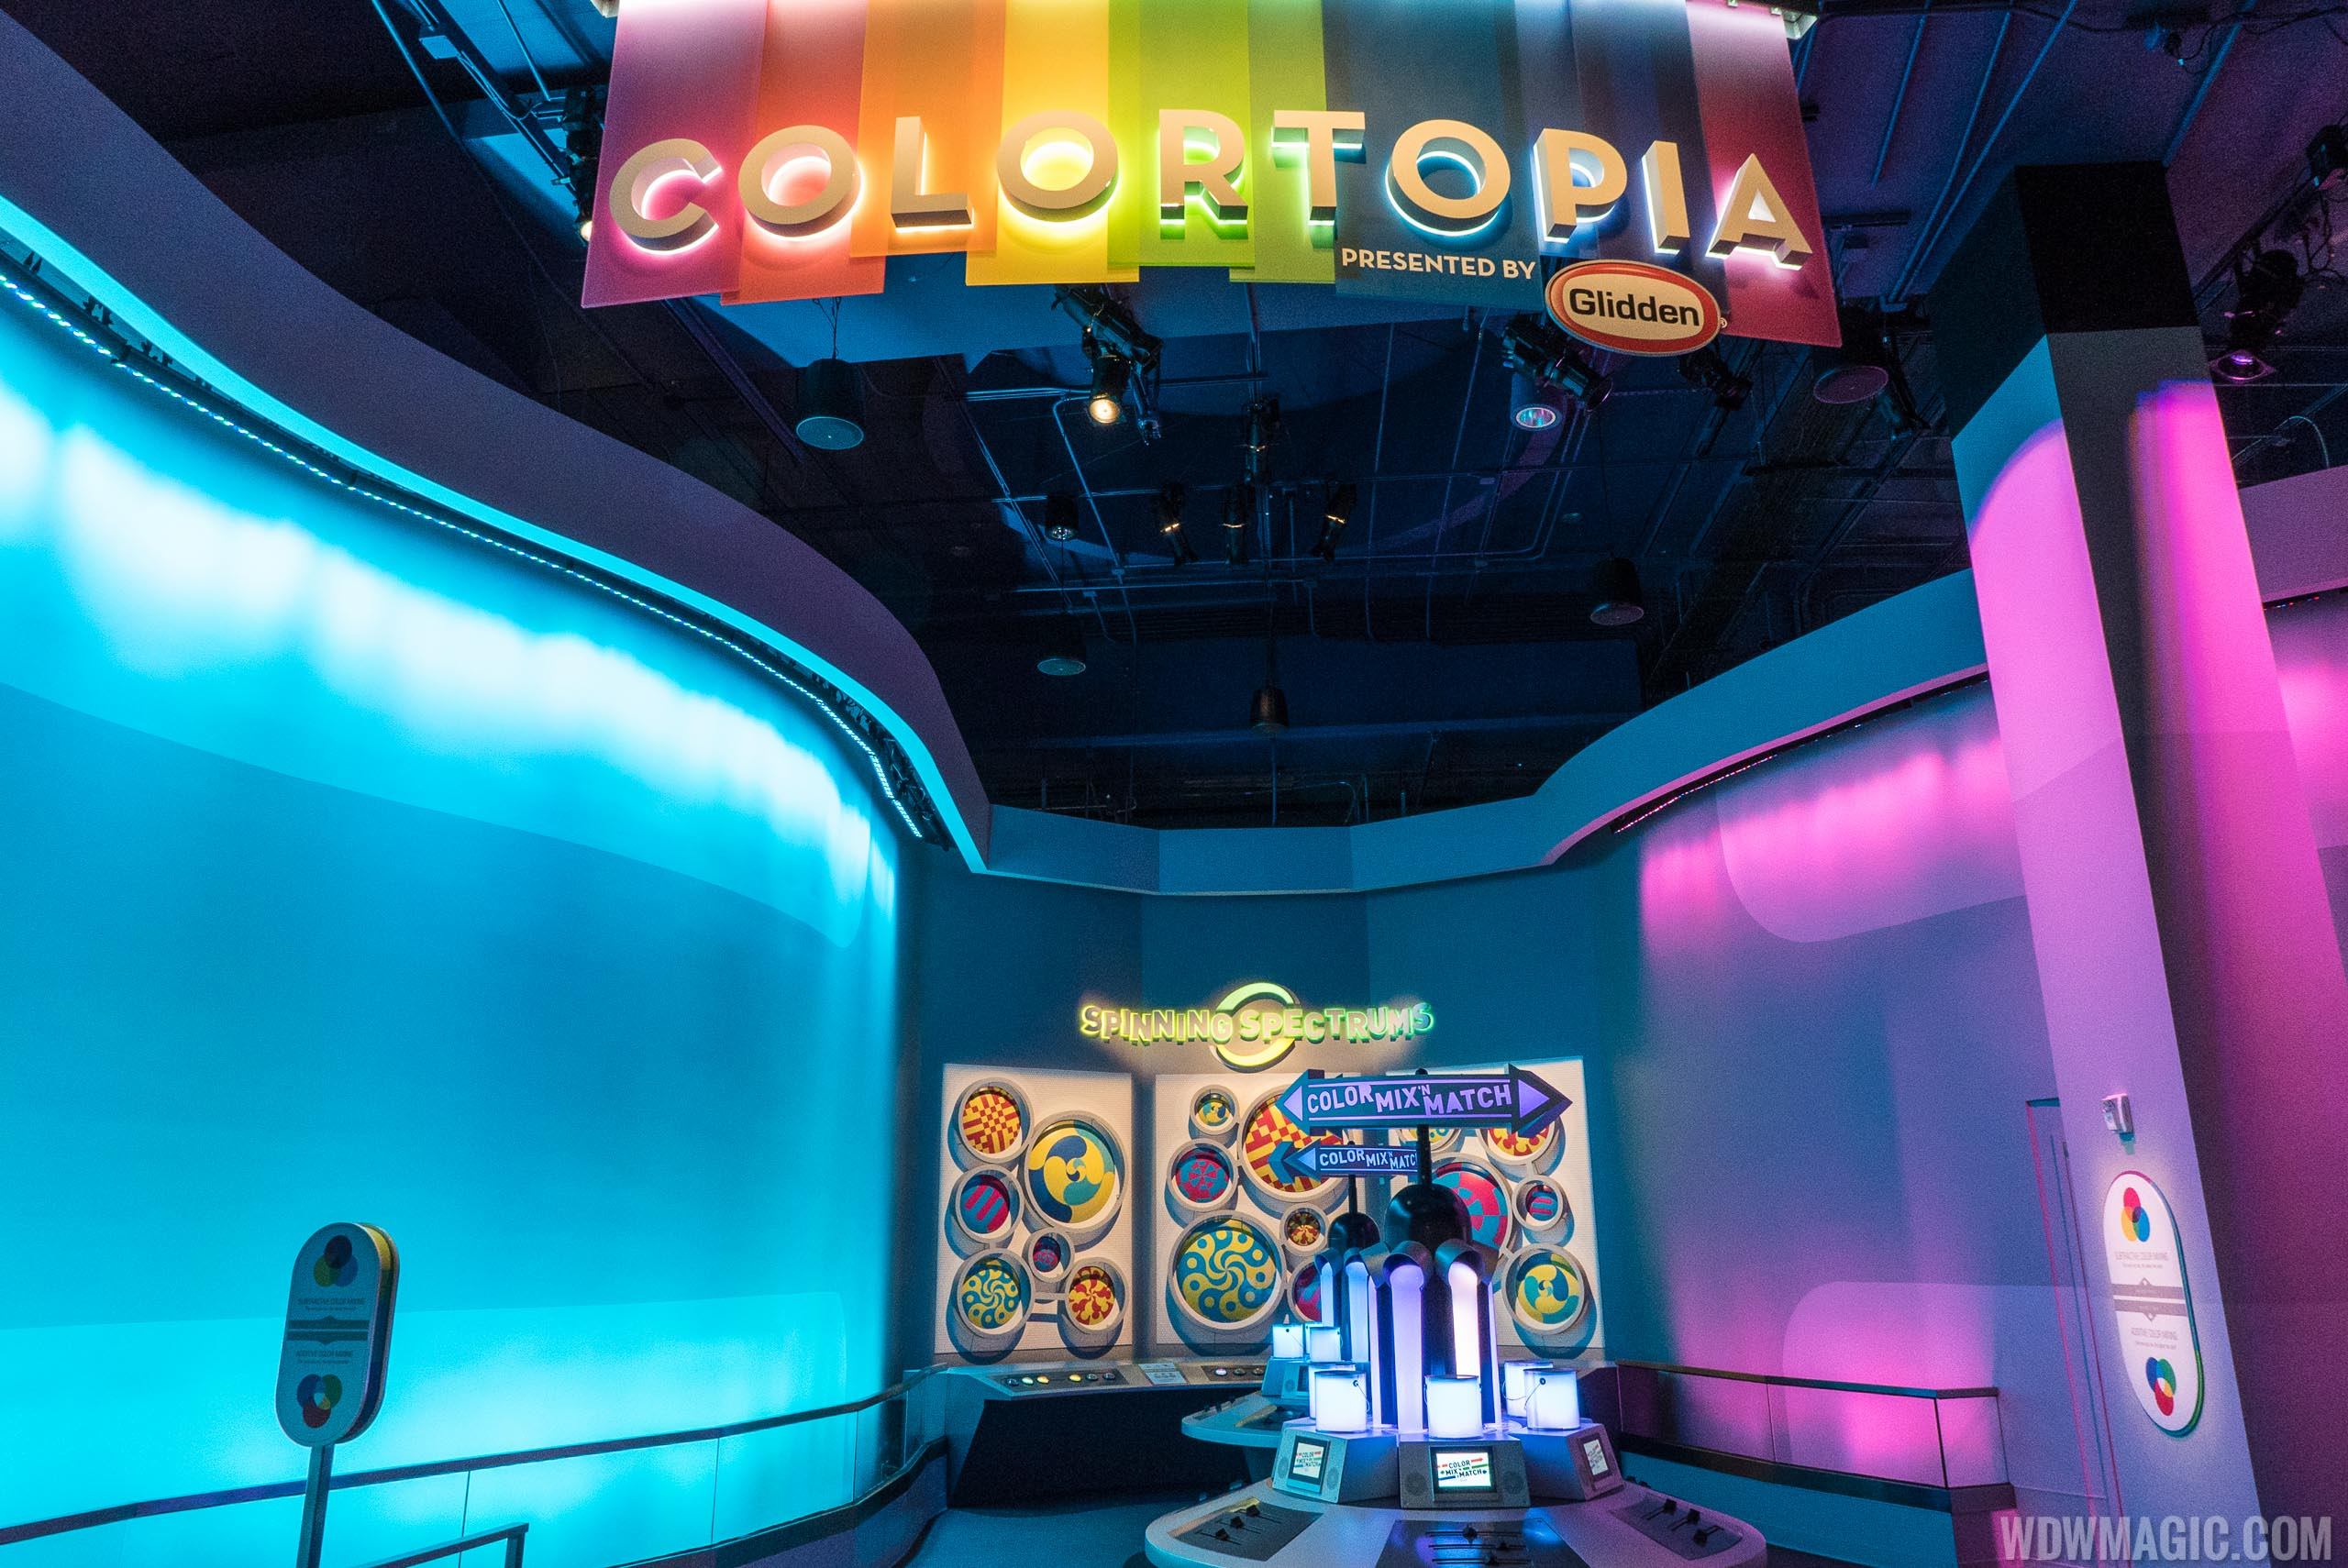 Colortopia overview